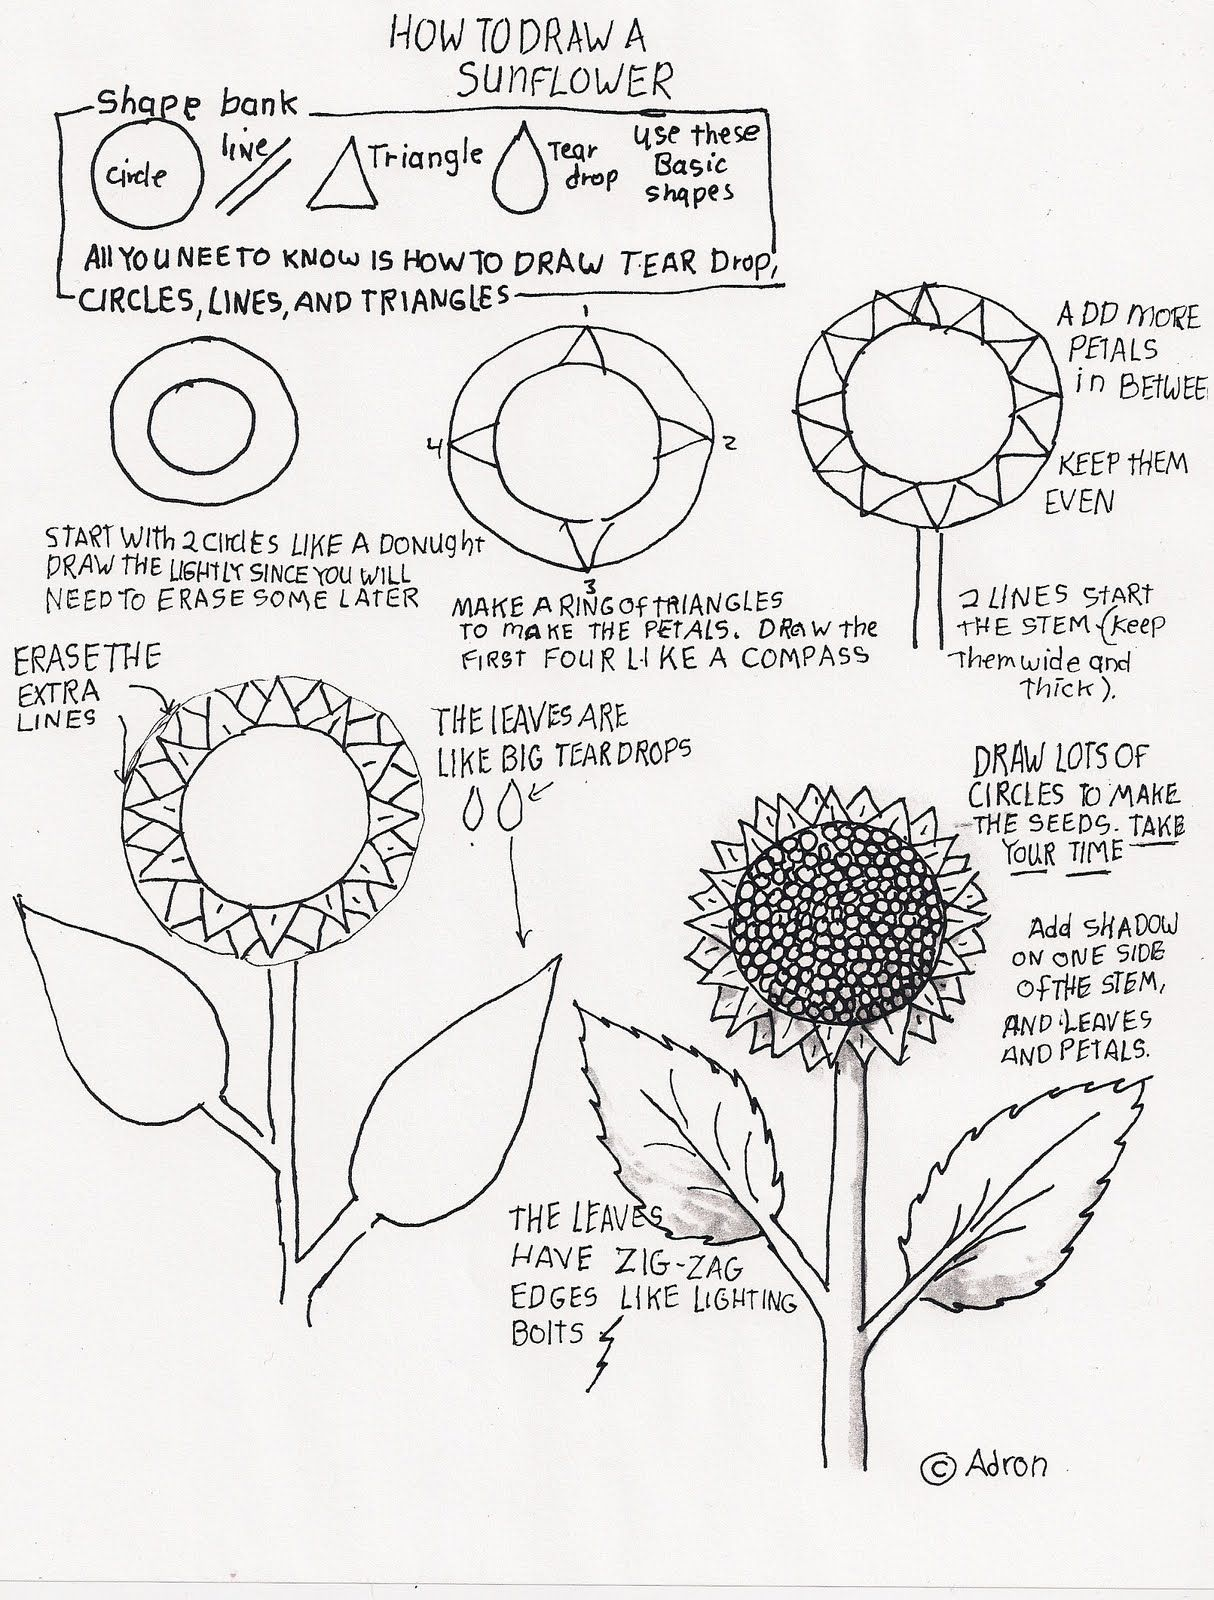 How To Draw A Sunflower Lesson For Young Artist